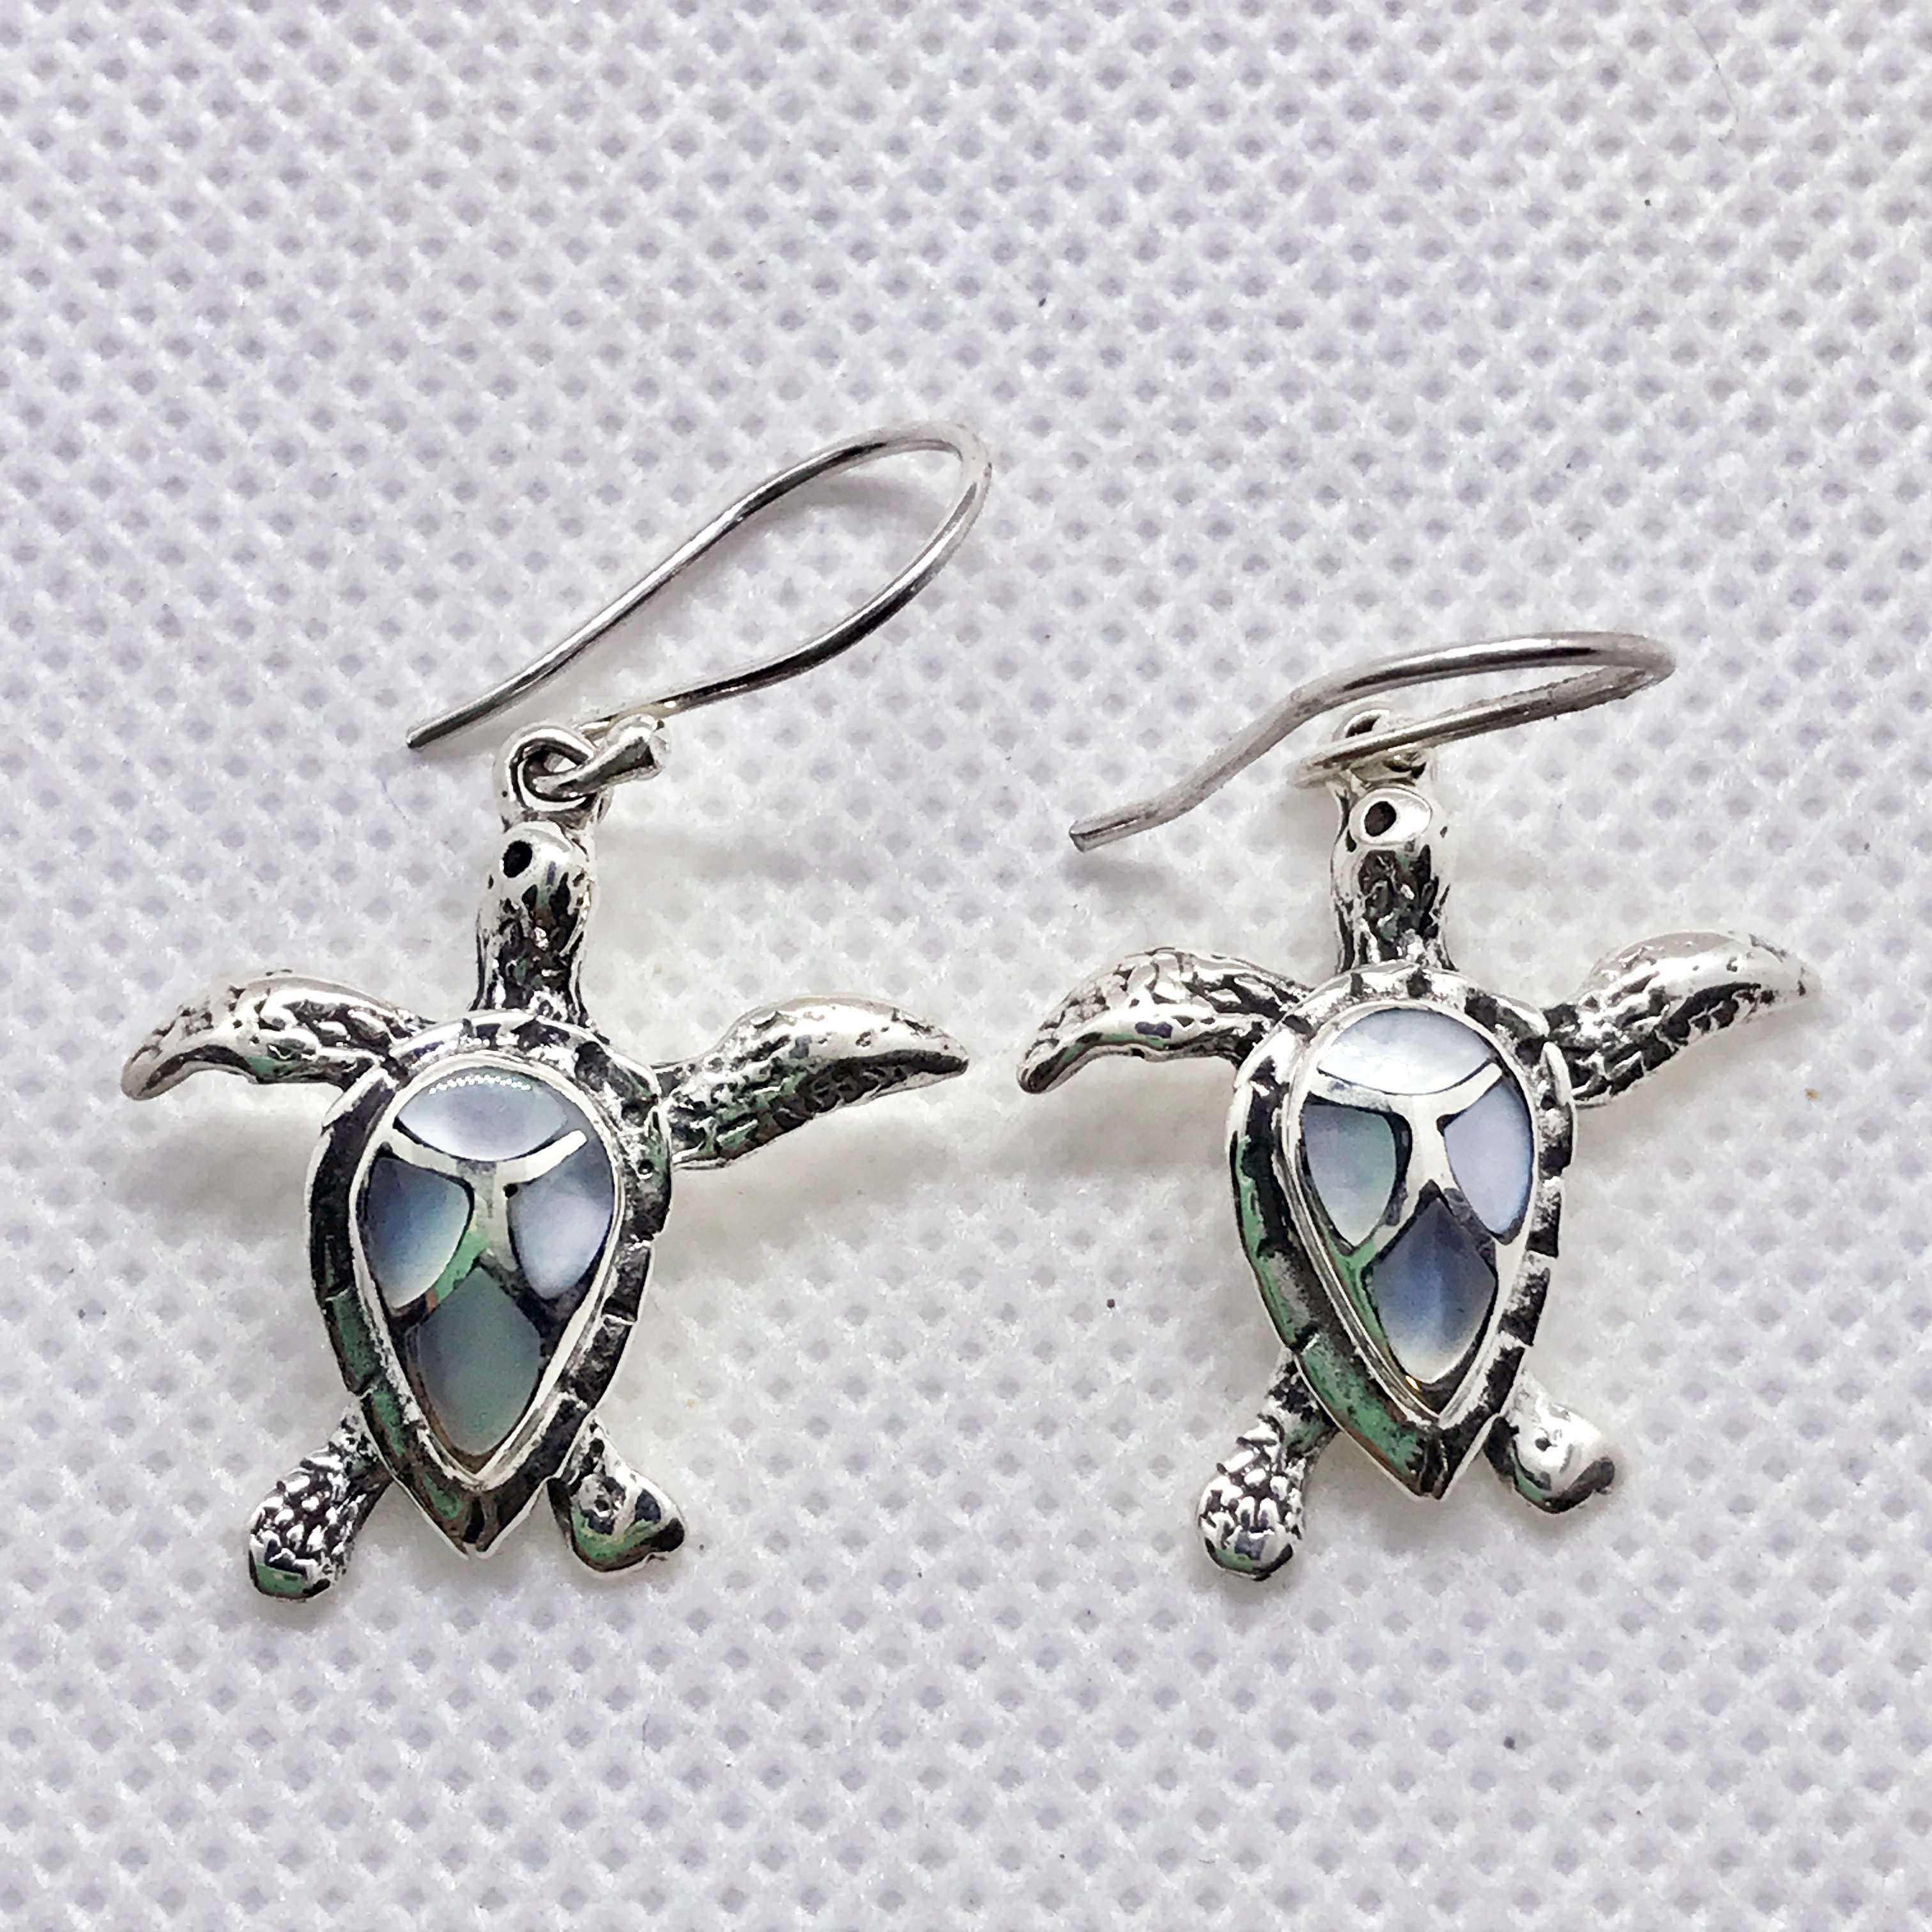 (HANDMADE 925 SILVER BALI TURTLE EARRINGS WITH MOTHER OF PEARL)